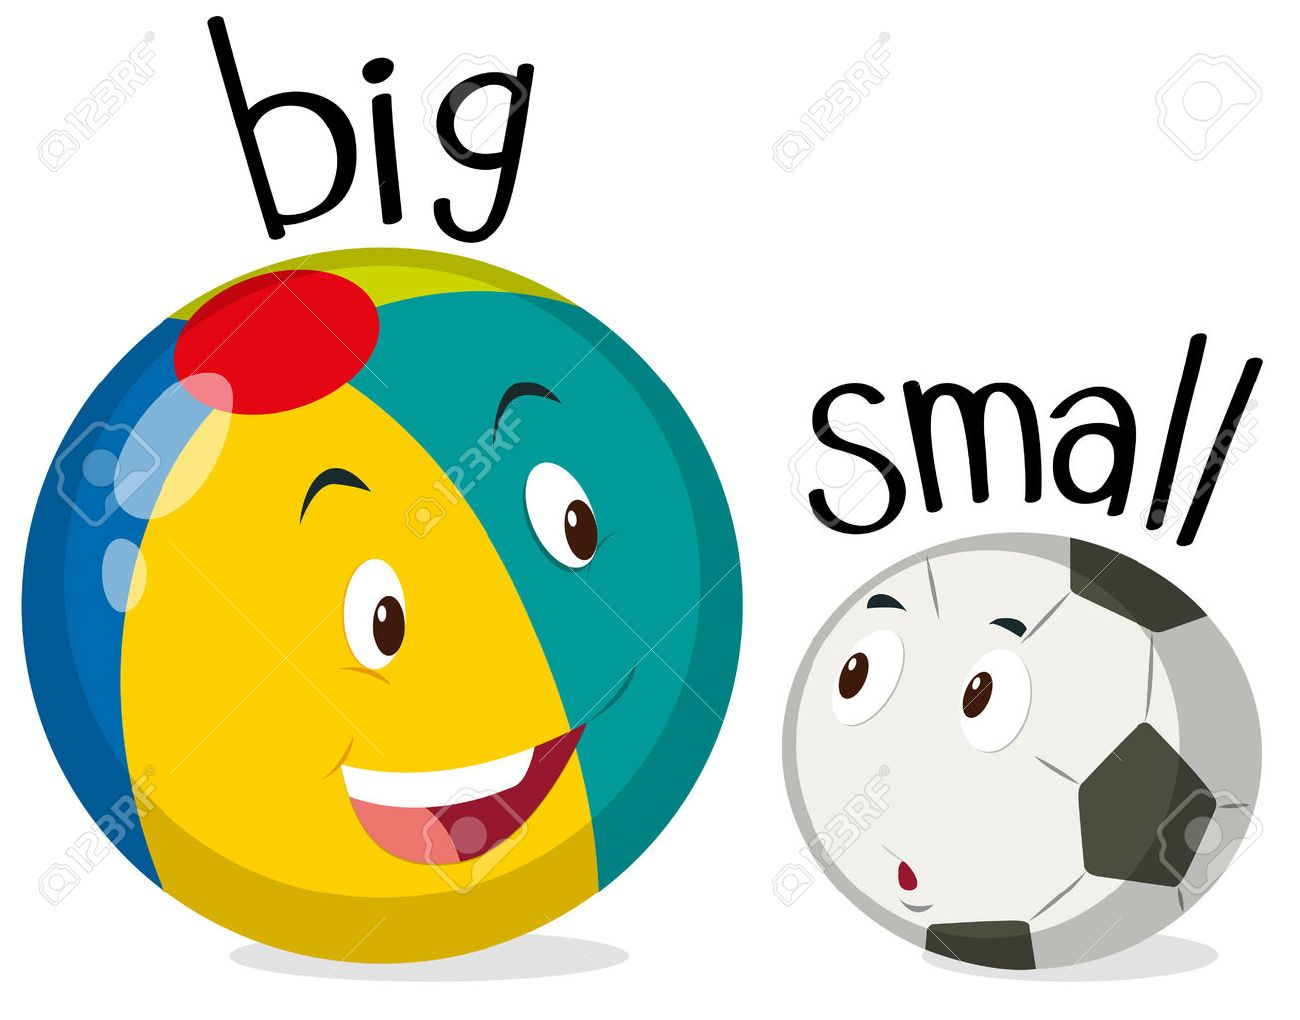 two balls one big and one small illustration royalty free cliparts rh 123rf com bing clip art free download big clip art in black and white